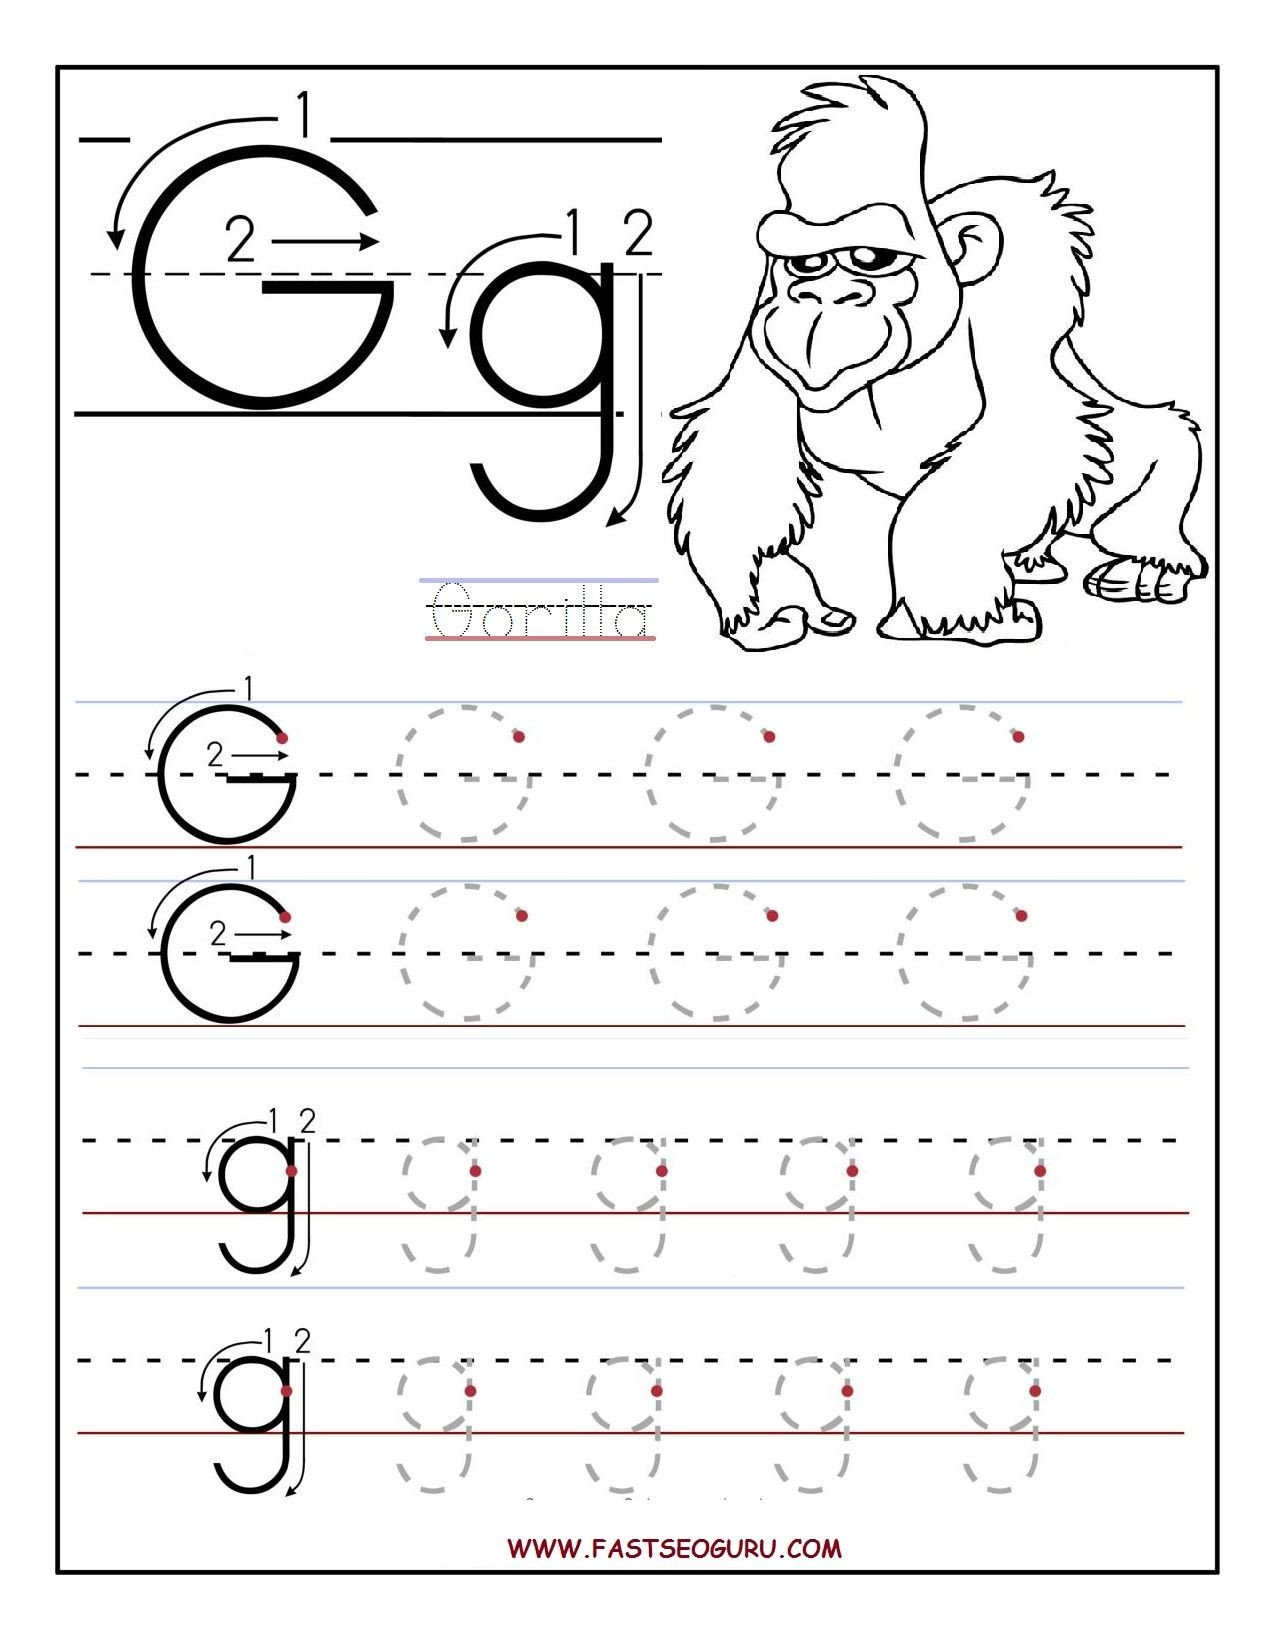 Letter G Tracing Worksheets Preschool Worksheets for Preschoolers